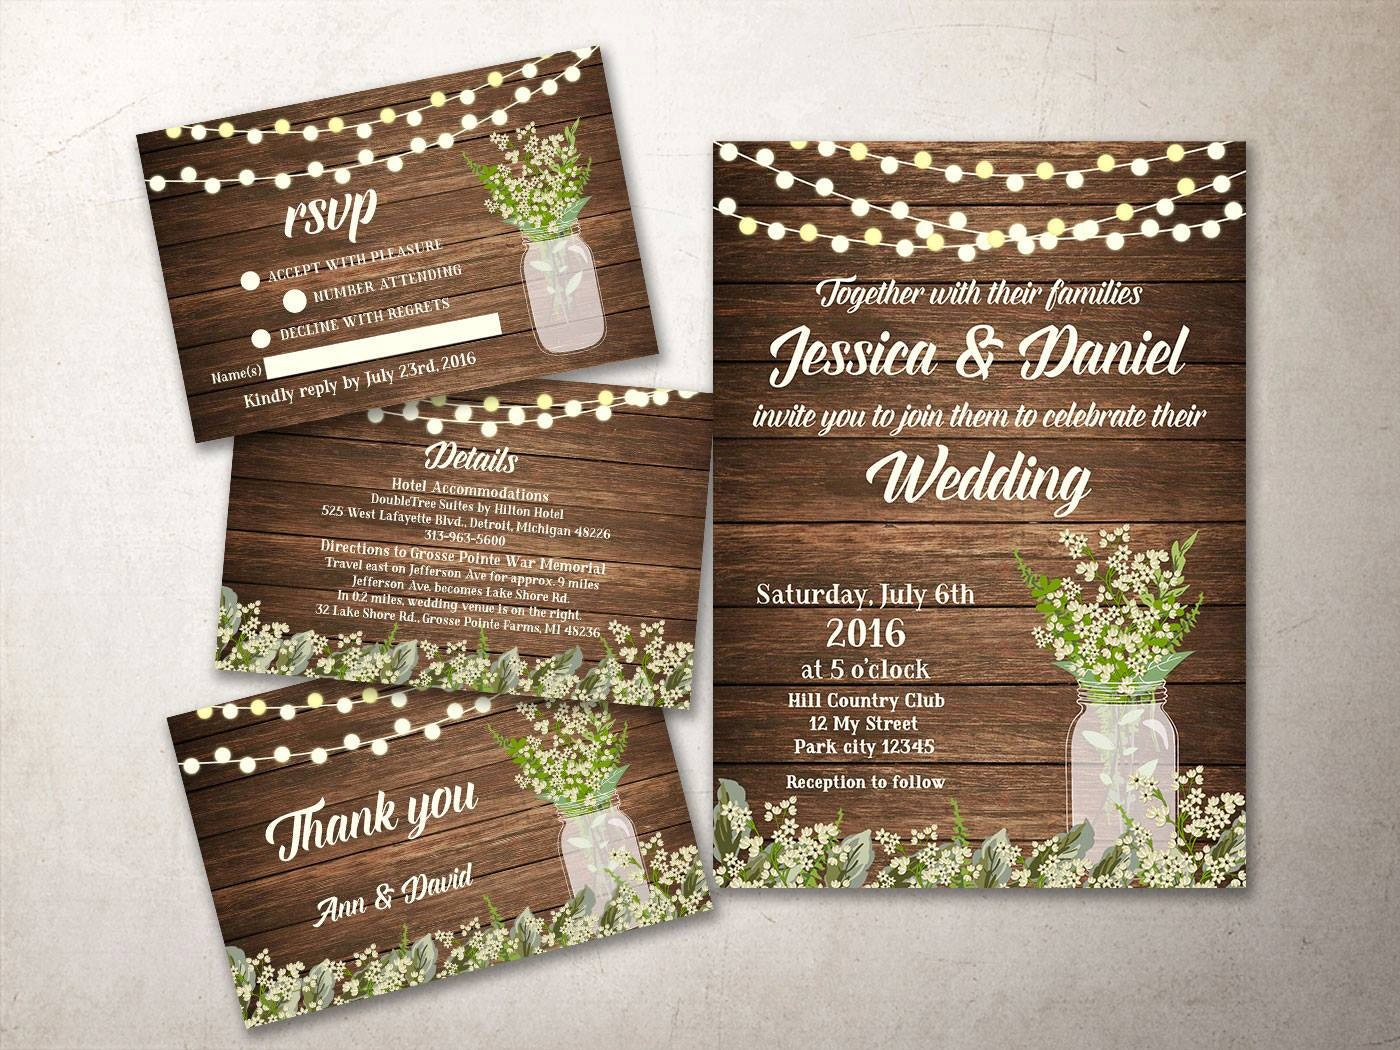 Printable Wedding Invitations Kits: Rustic Wedding Invitation Kit Printable Barn Wedding